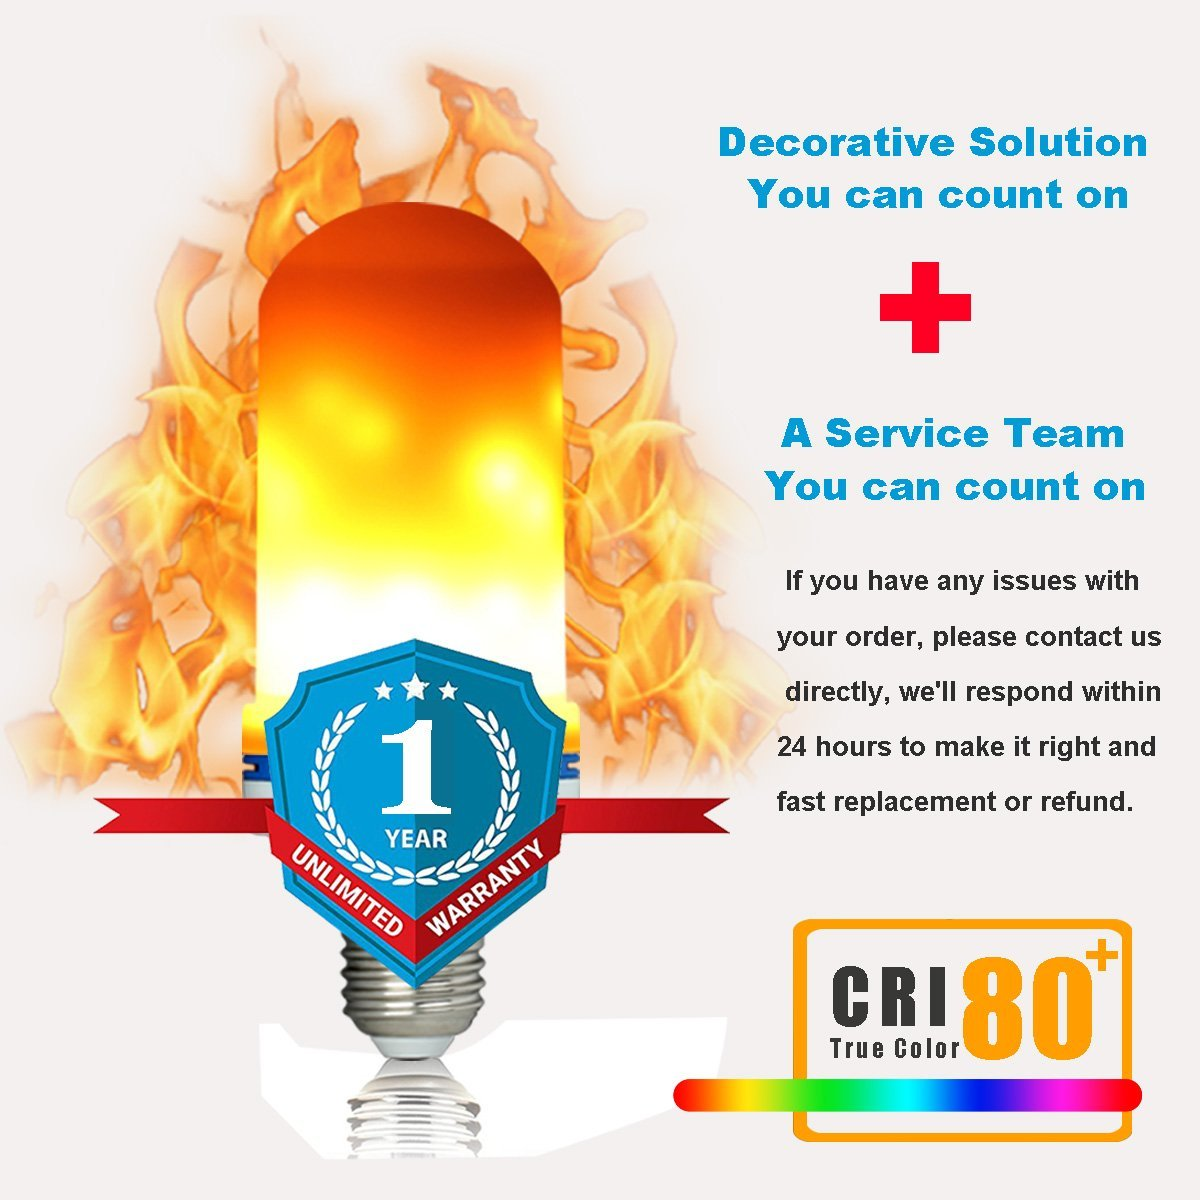 LED Flame Effect Fire Light Bulb with 4 Modes w/Gravity Sensor, Ambient Simulation, Gas Lamp, Flicker Up & Down